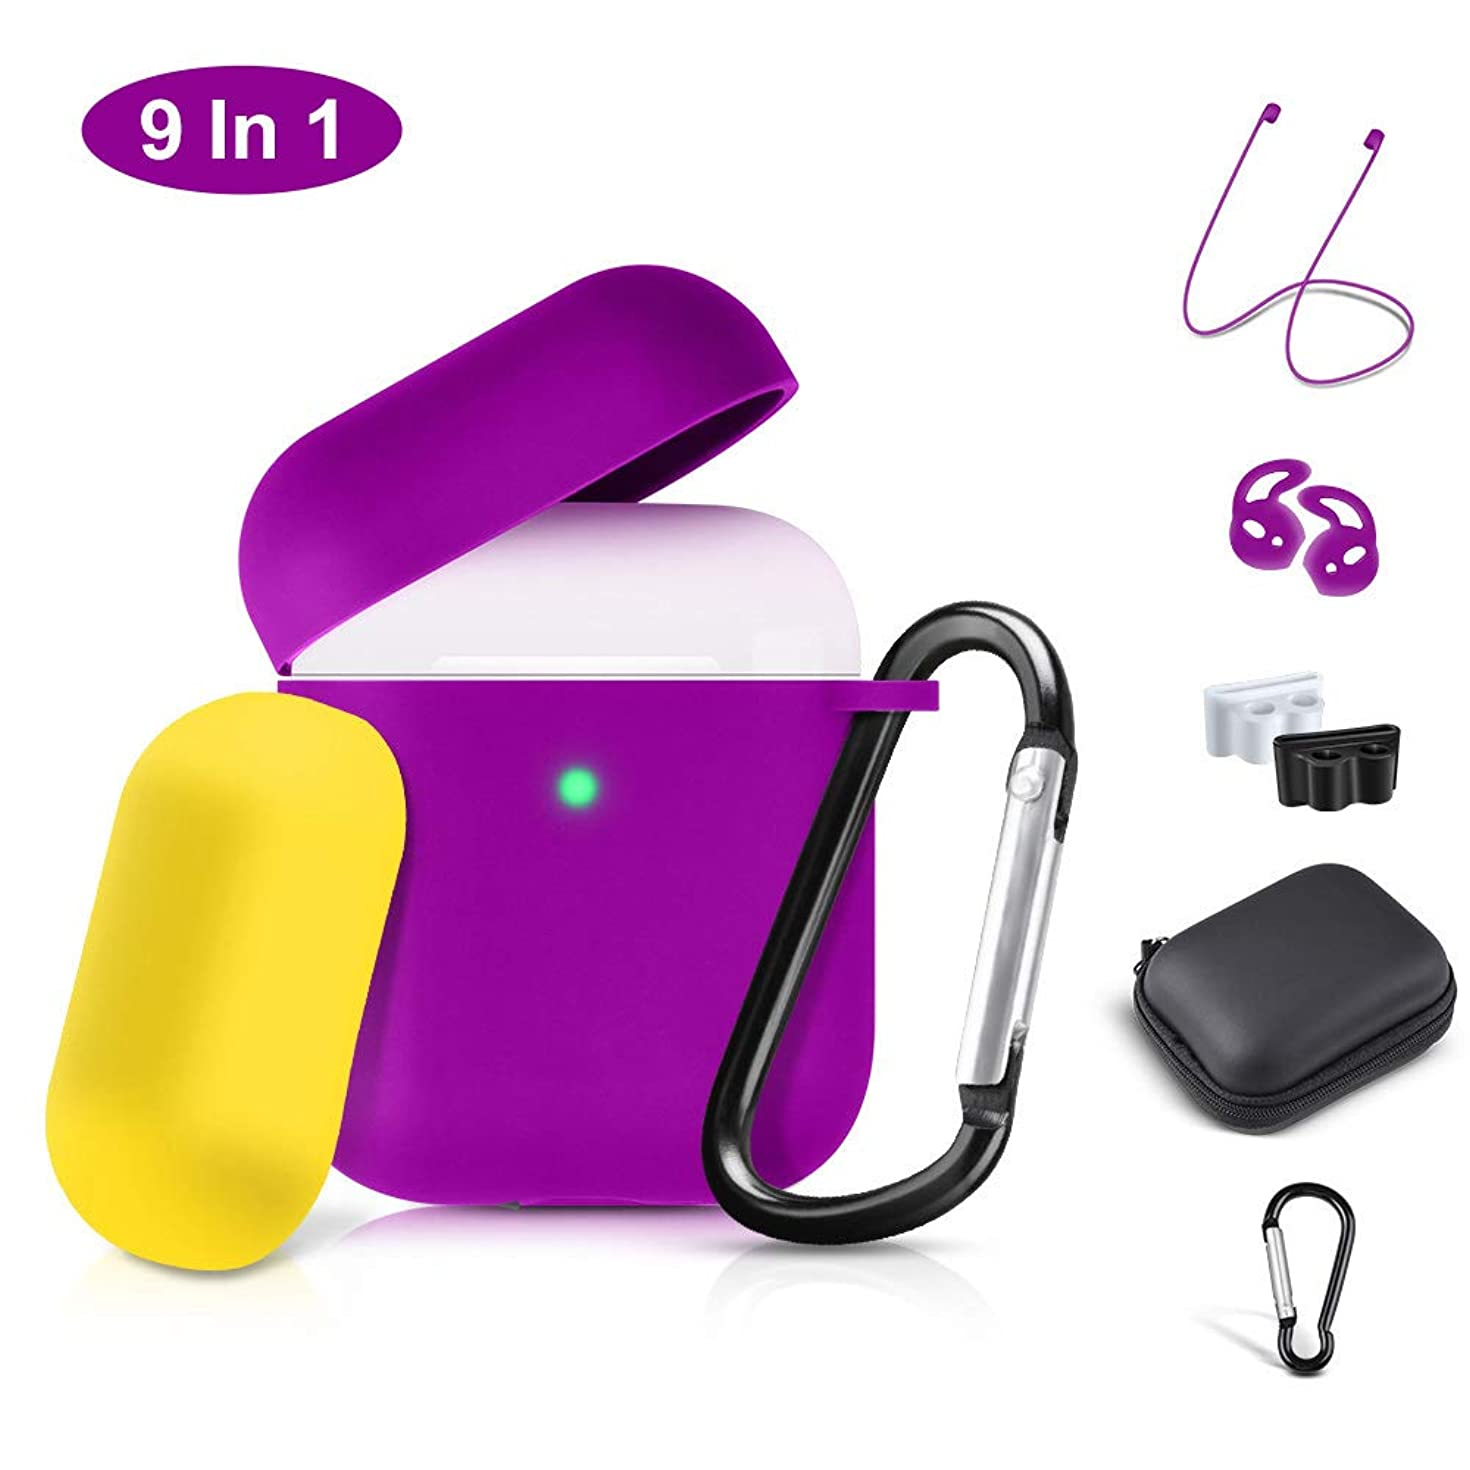 Airpods Case Cover, 2019 Airpod 2 Silicone Case Full Protective Cover Skin 9 in 1 Airpods Accessories for Apple Airpods 2 & 1 Wireless Charging Case, RTAKO Purple Airpods Cover(Front LED Visible)